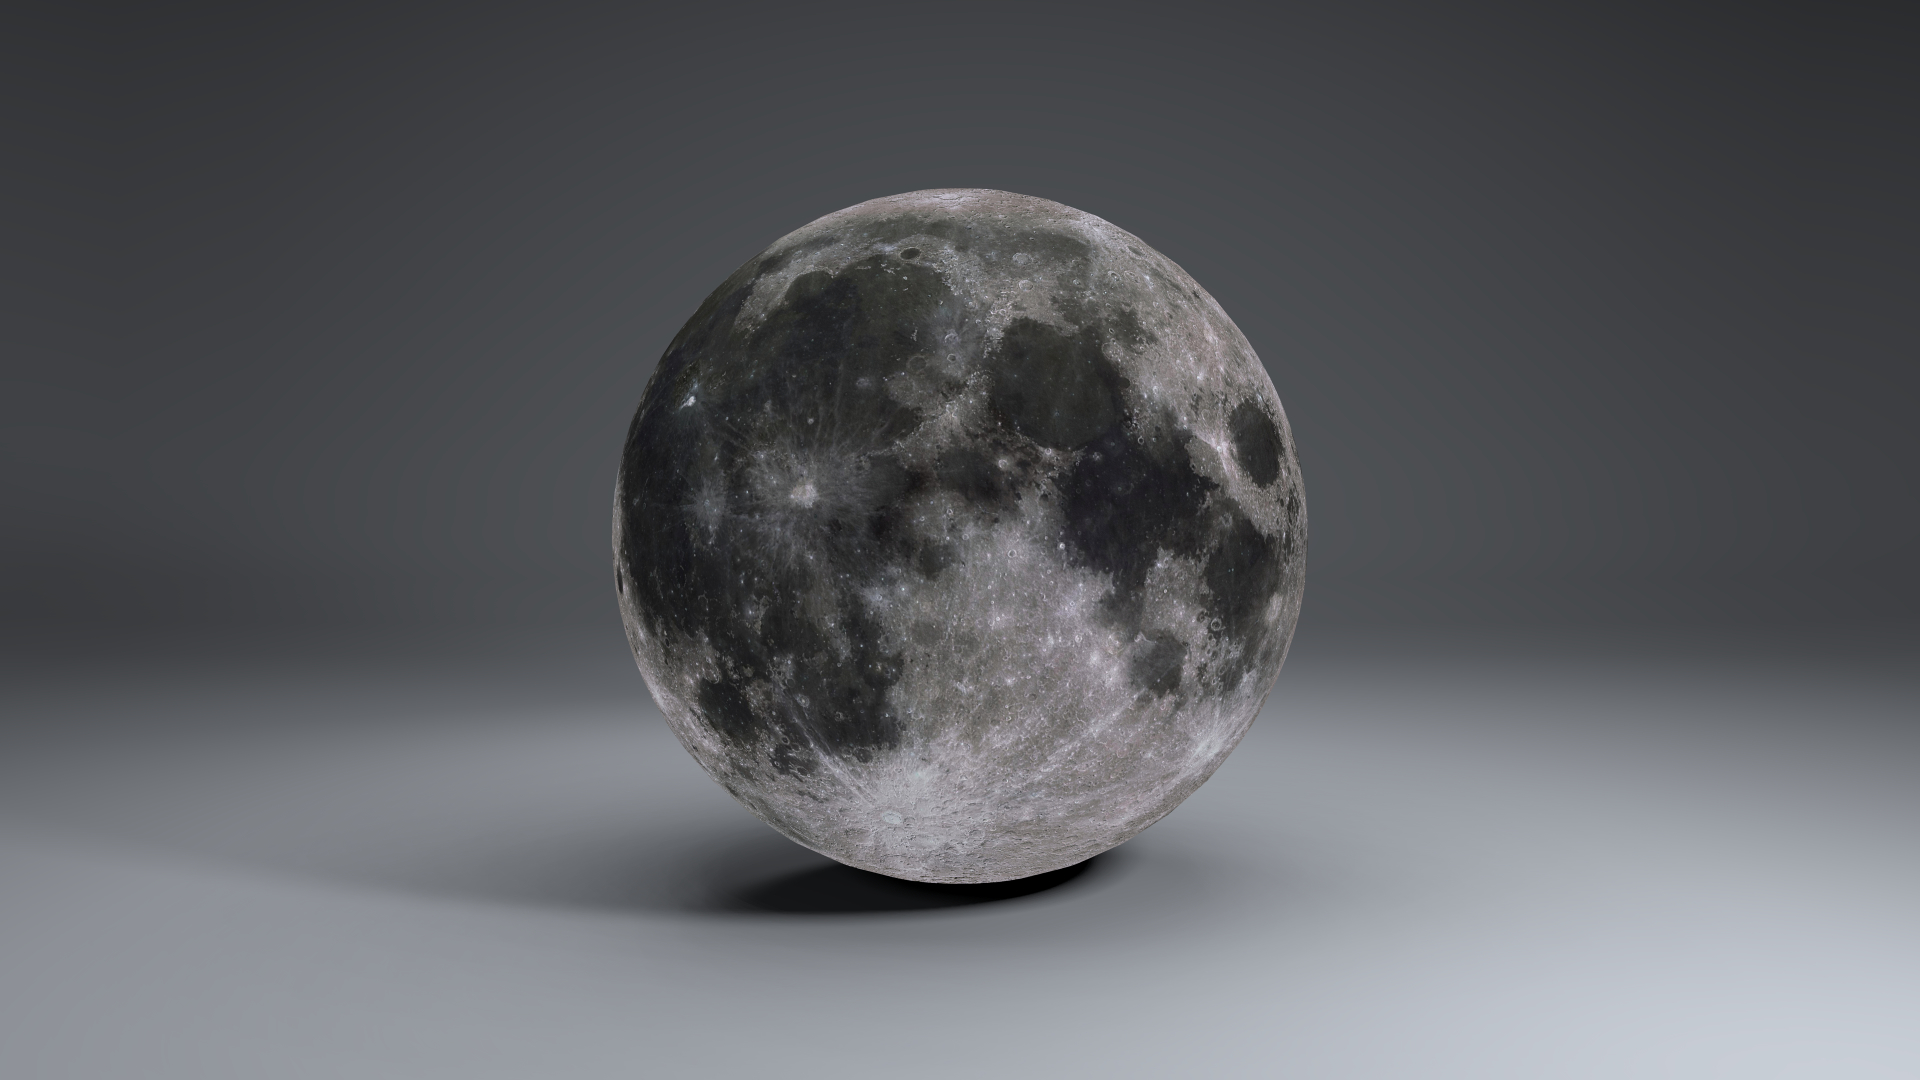 moonglobe 4k 3d model 3ds fbx blend dae obj 221760